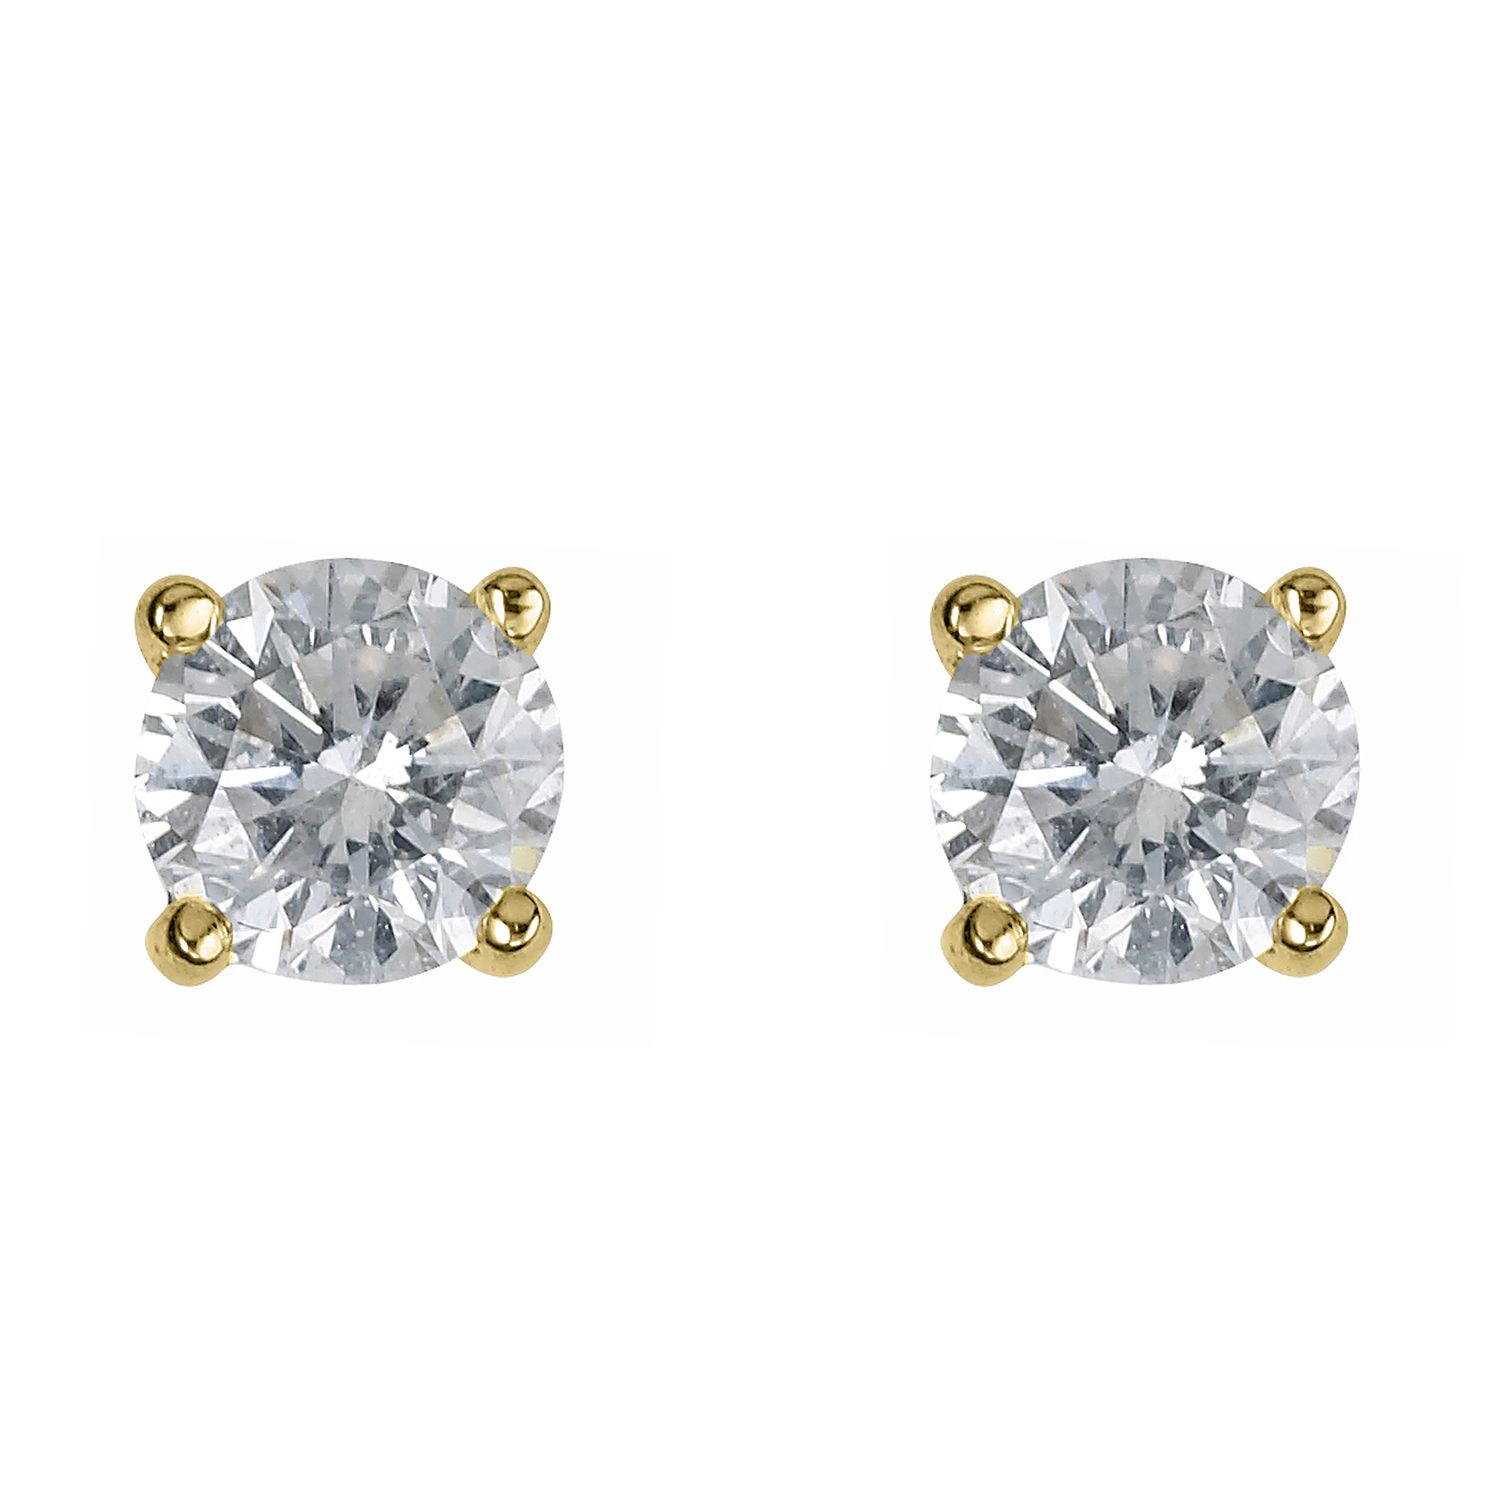 18ct Yellow Gold 1/2ct Diamond F-G VS2 Solitaire Earrings - Product number 2542129